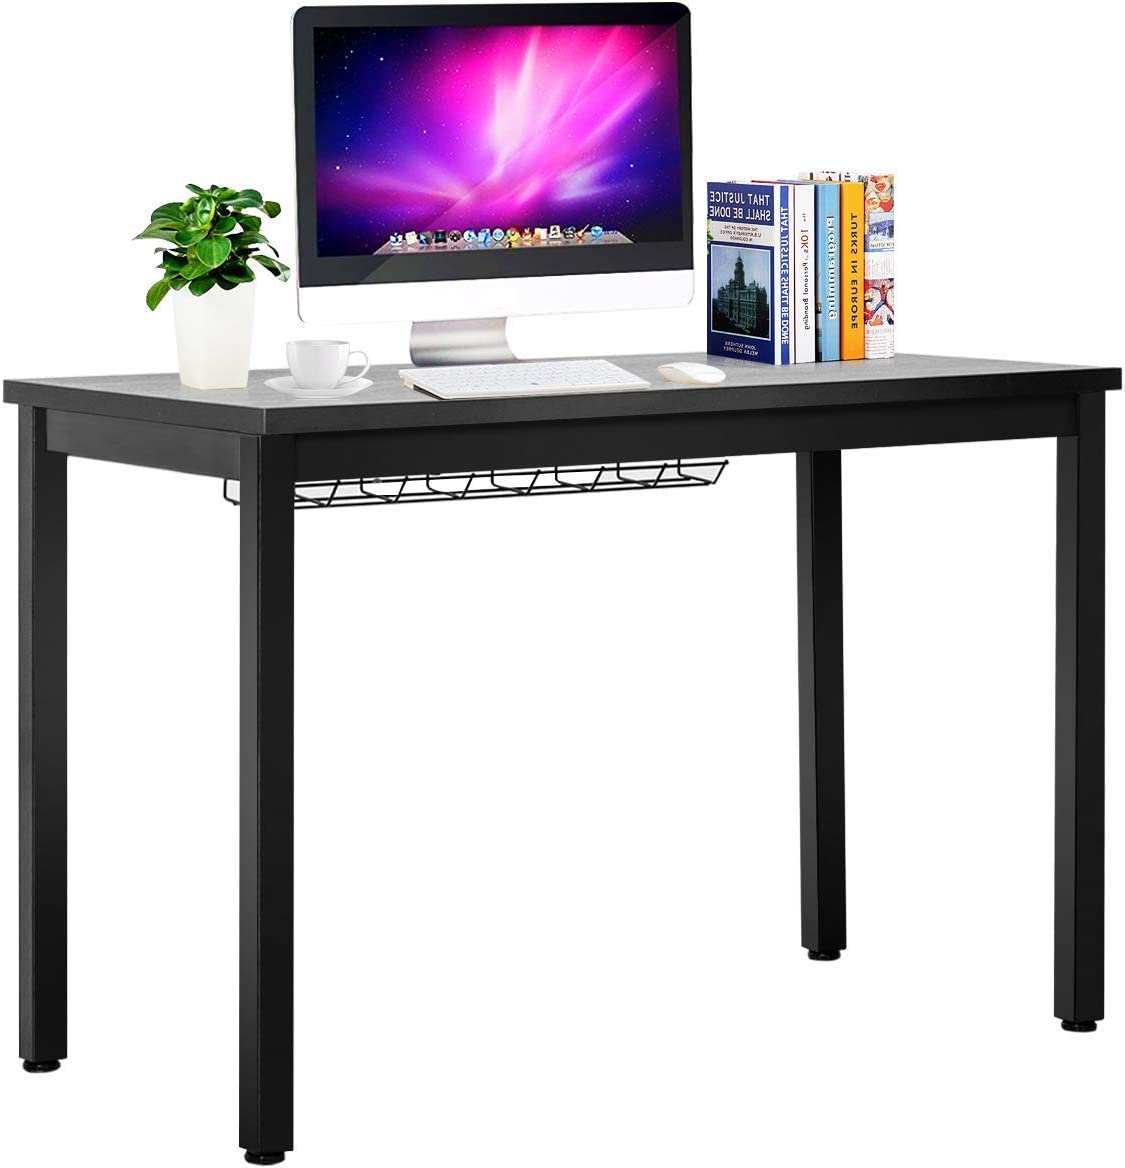 Tangkula Writing Desk, Computer Desk with Cable Organizer, Wood and Metal Study Workstation Modern Writing Table for Home and Office Black